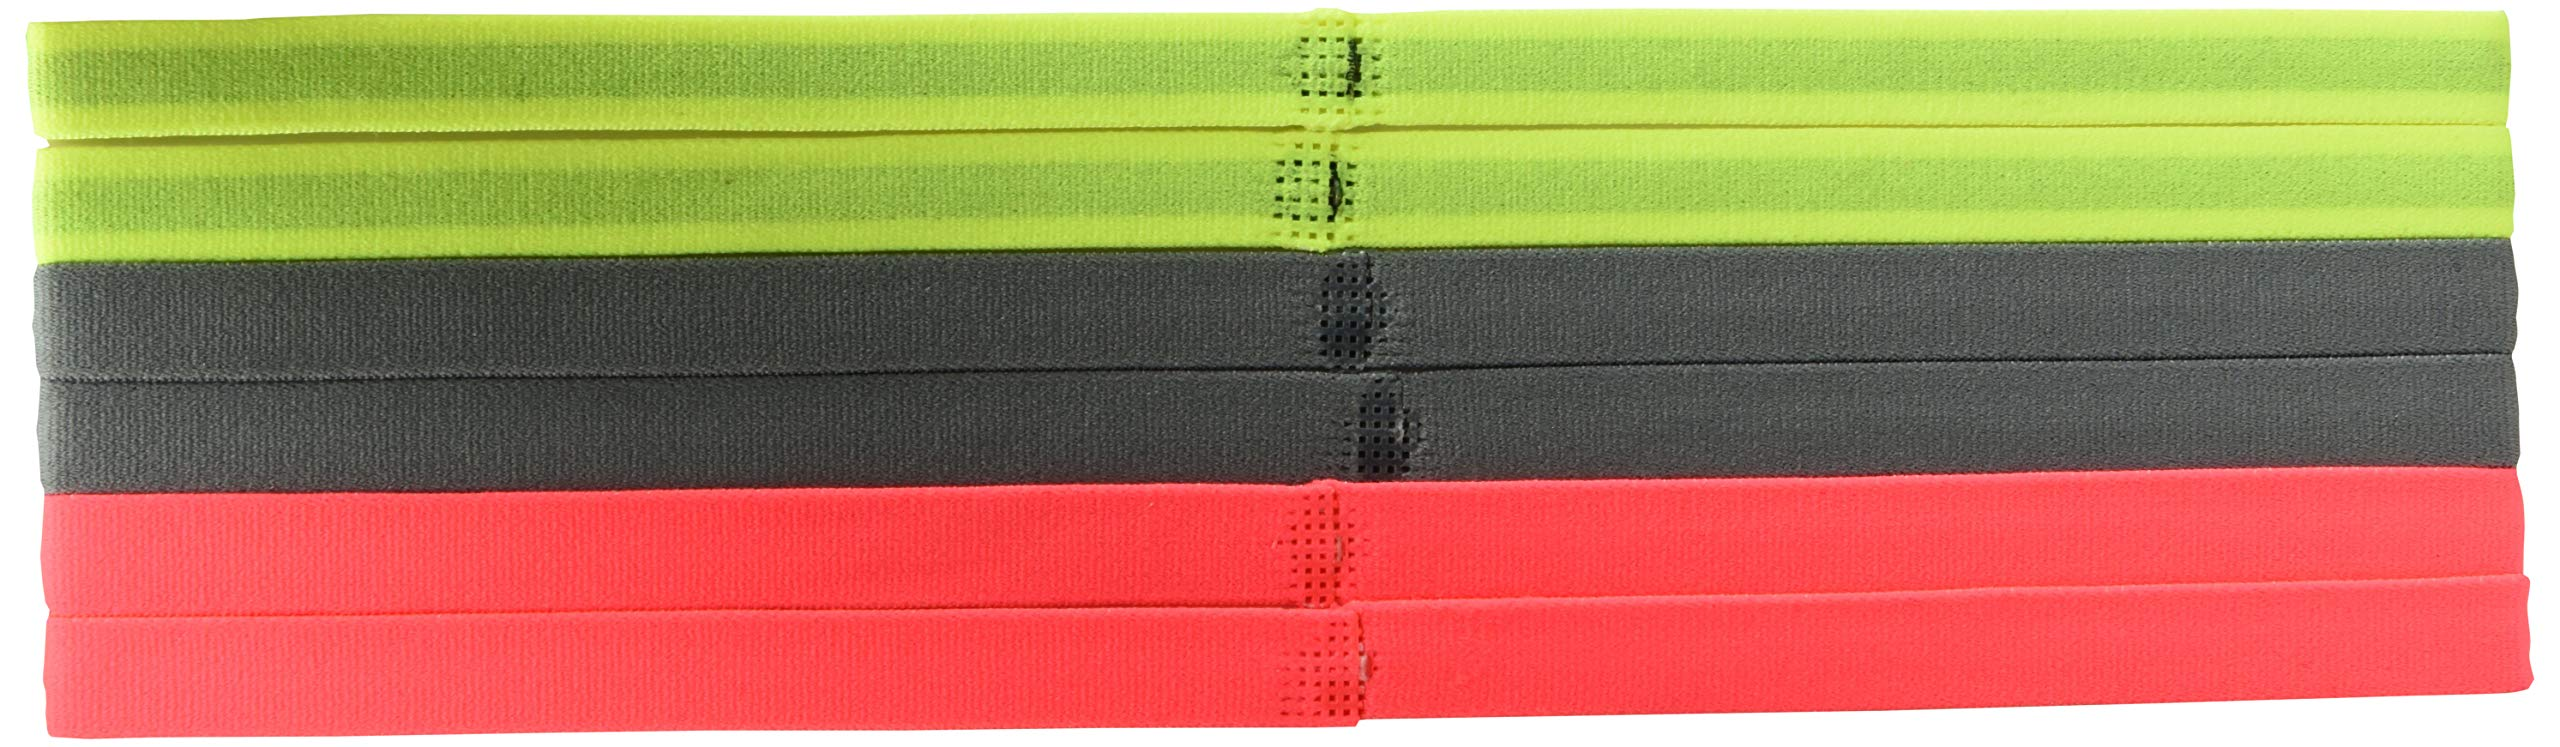 Nike Women's Swoosh Sport Headbands 6PK Volt/Cool Grey/Hot Punch Size One Size by Nike (Image #2)